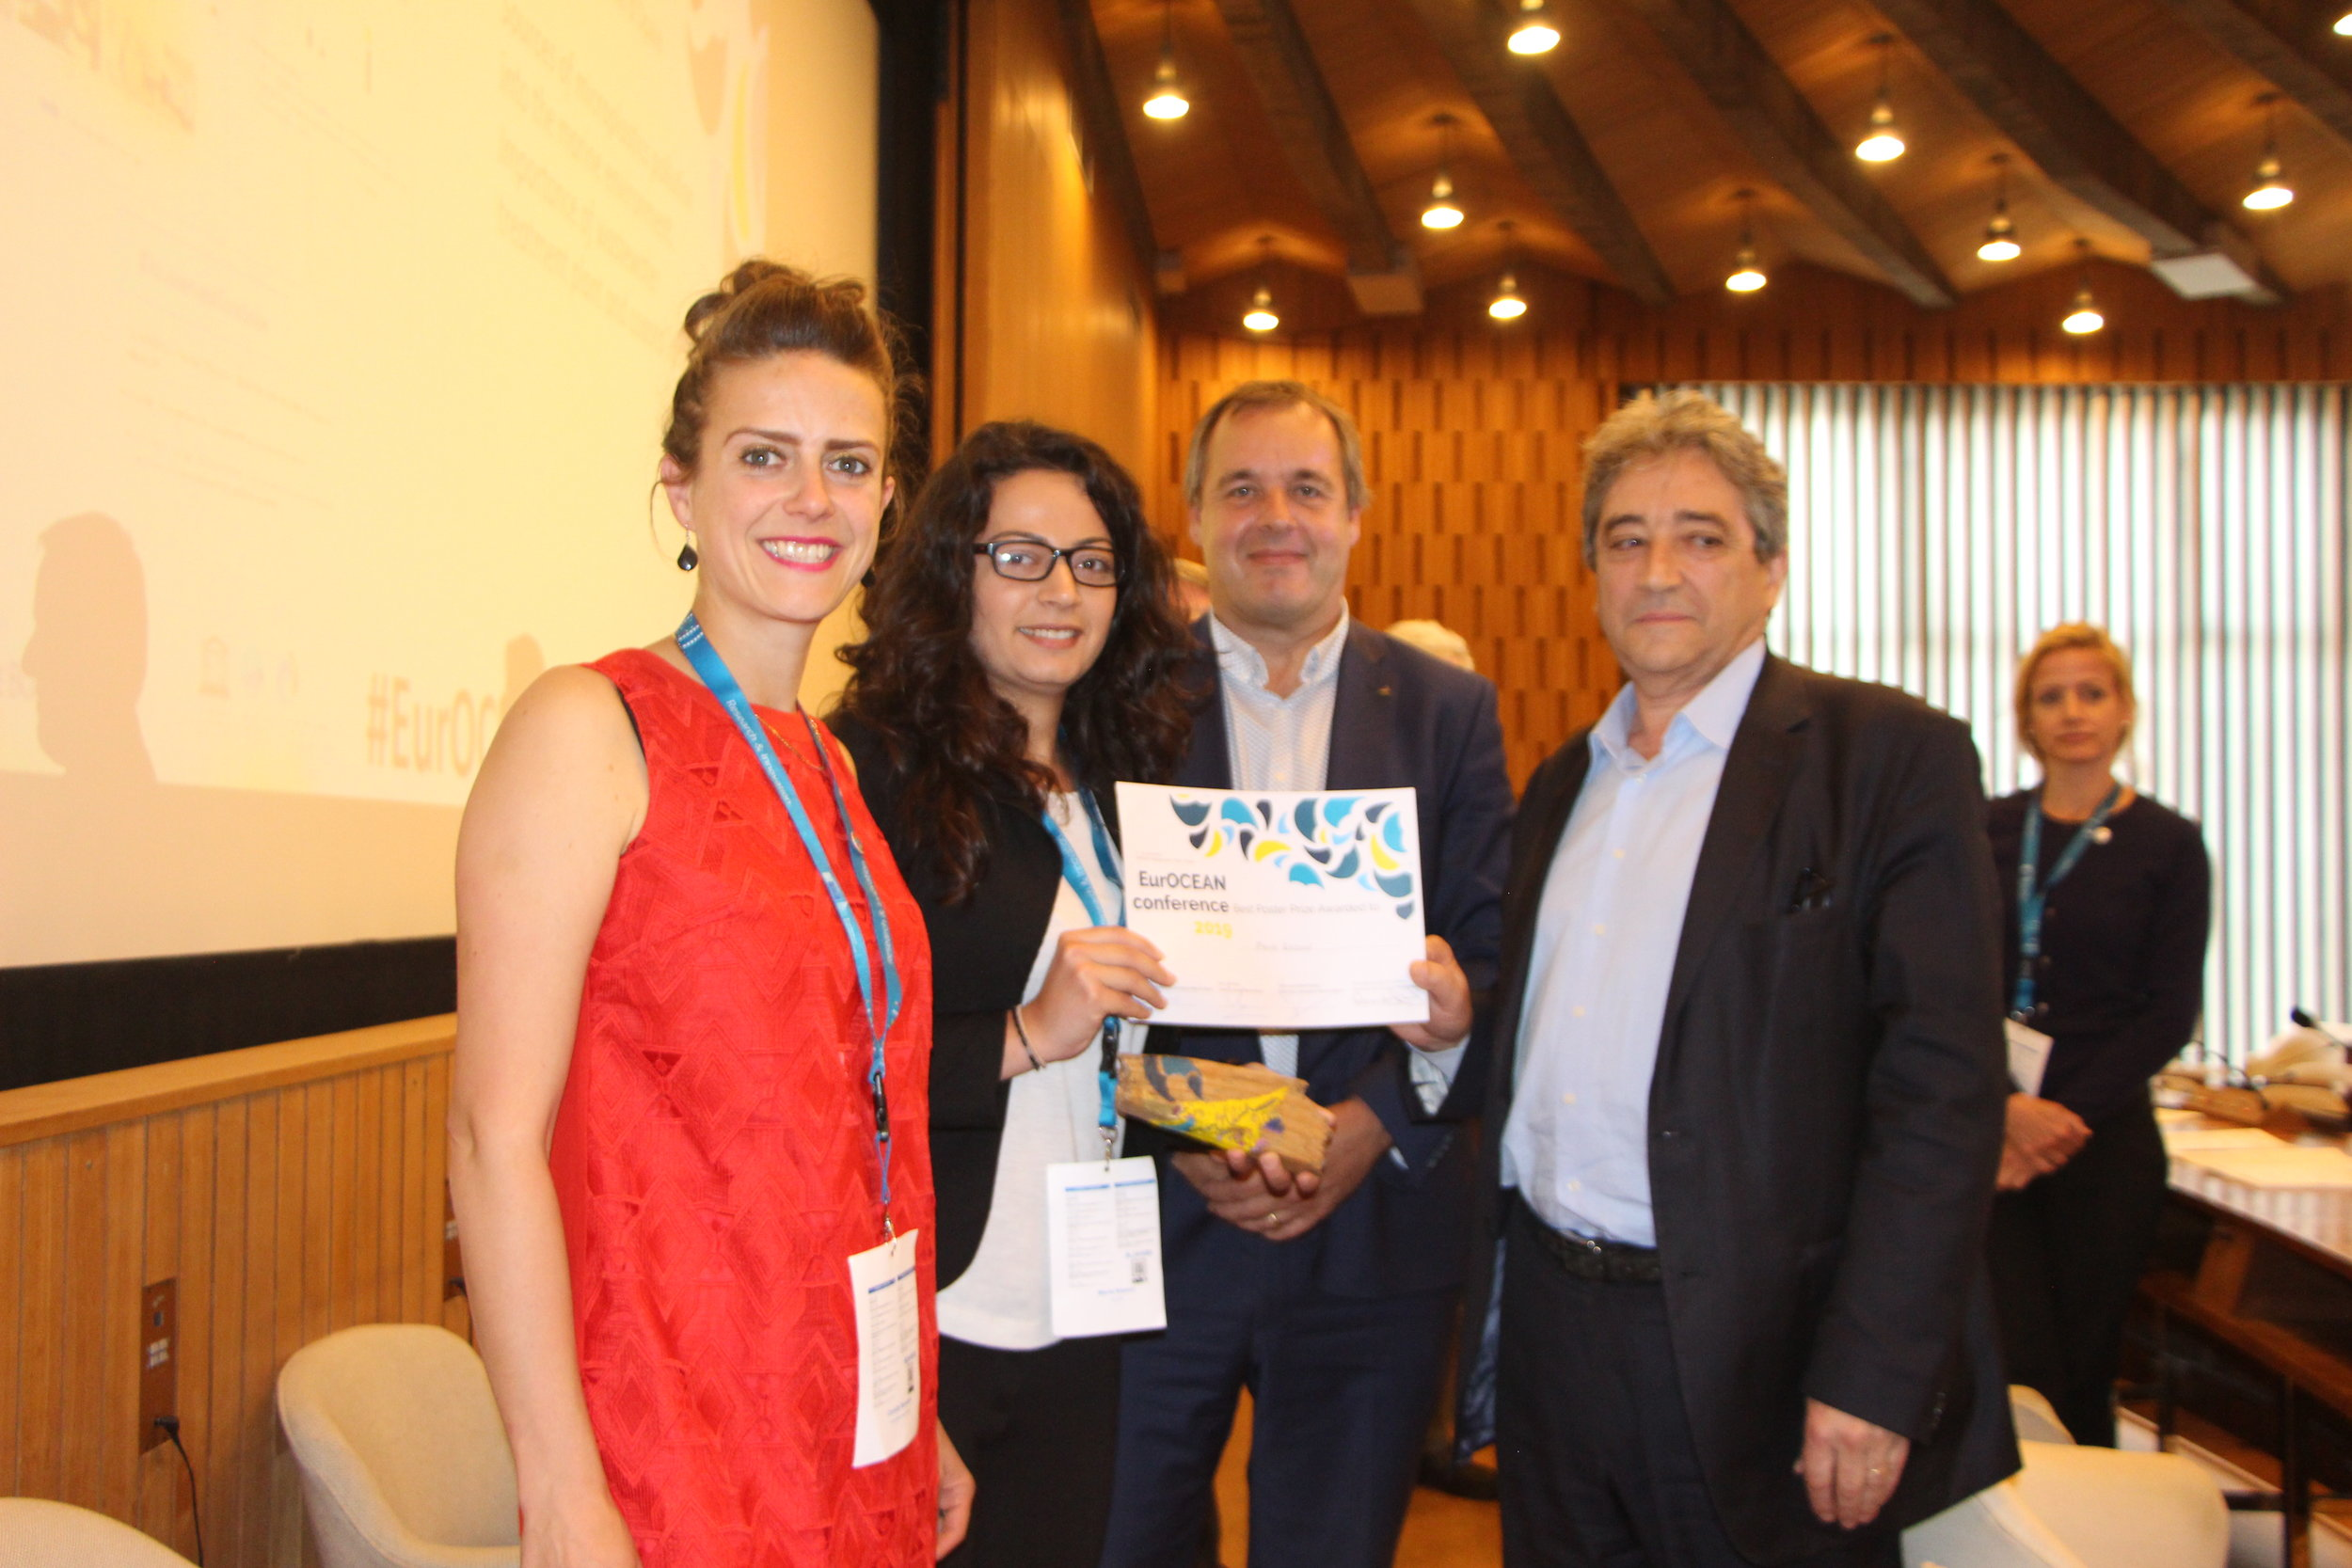 From left to right: Camilla Brendon (commissioned artist), Maria Kazour (poster winner), Jan Mees (European Marine Board Chair) and Ricardo Serrão Santos (Member of European Parliament)